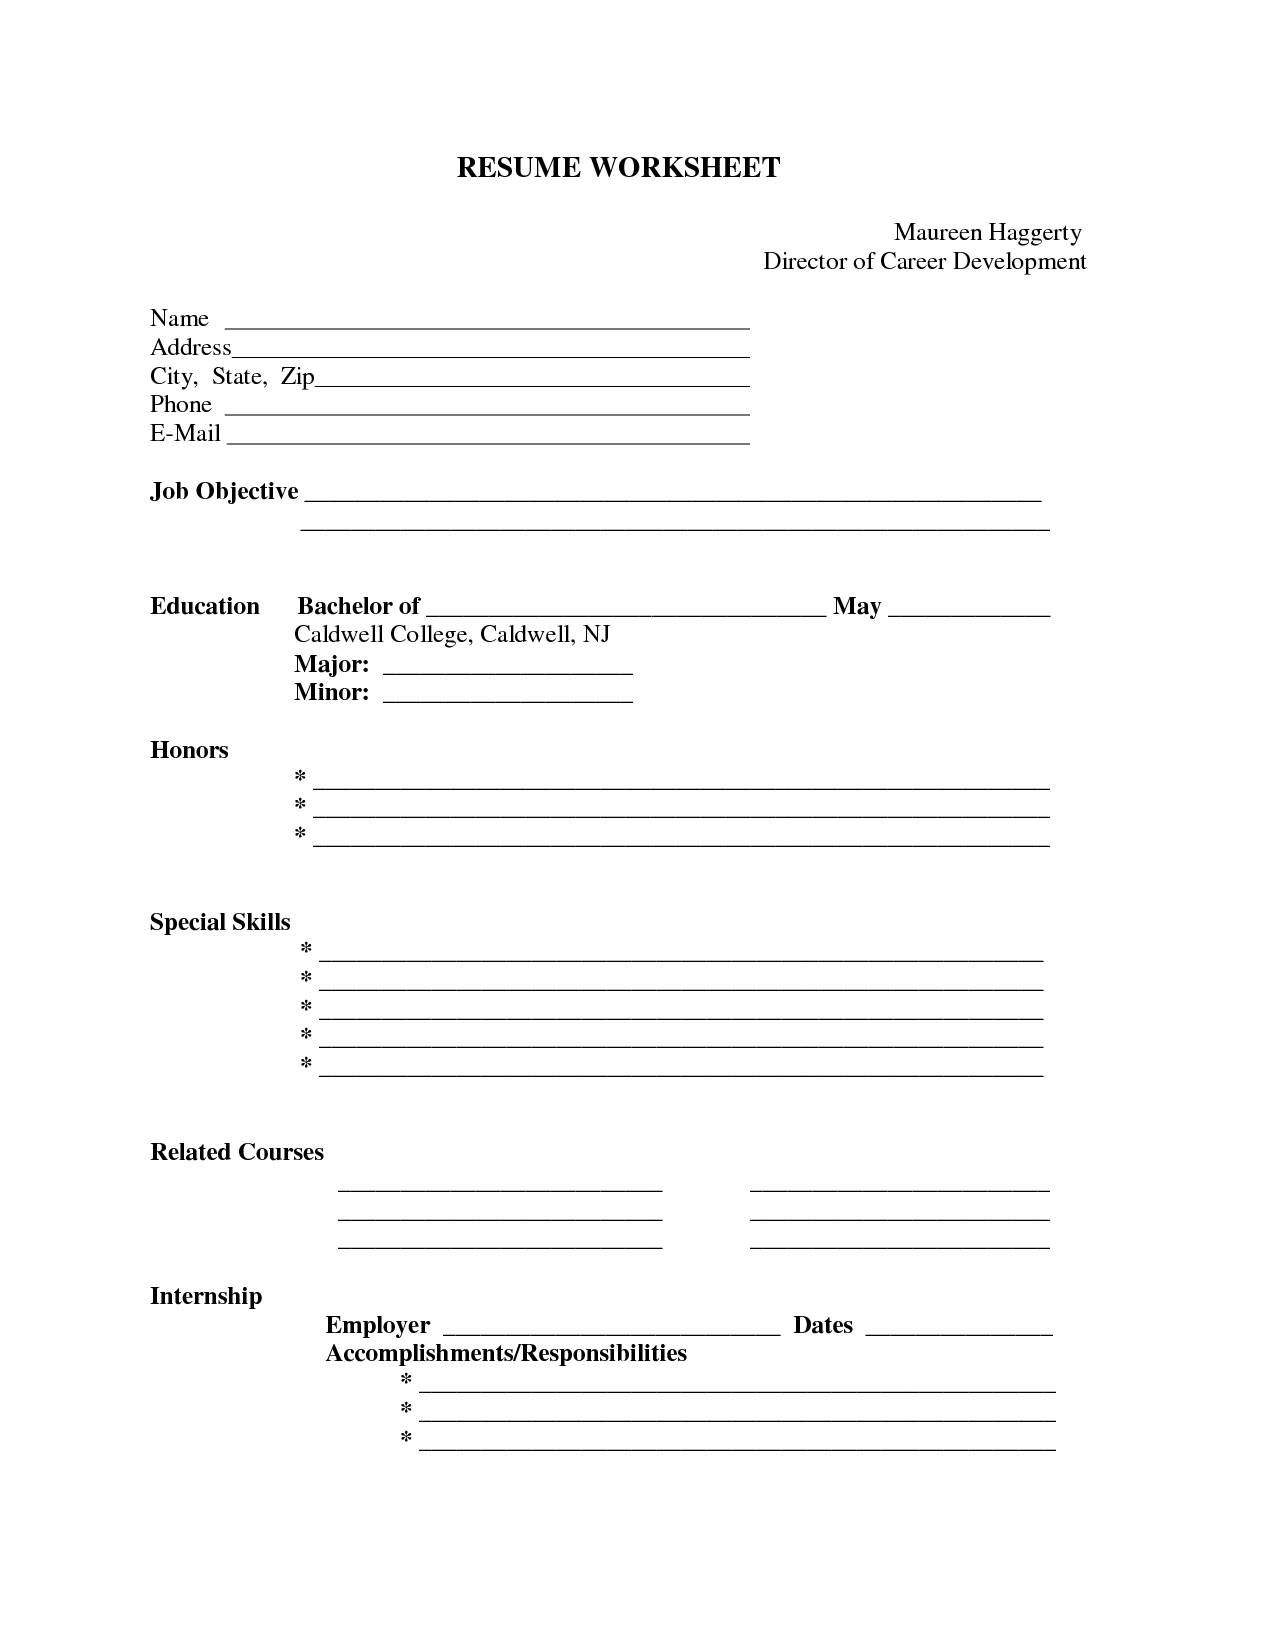 Pin By Resumejob On Resume Job Sample Resume Resume Resume Templates